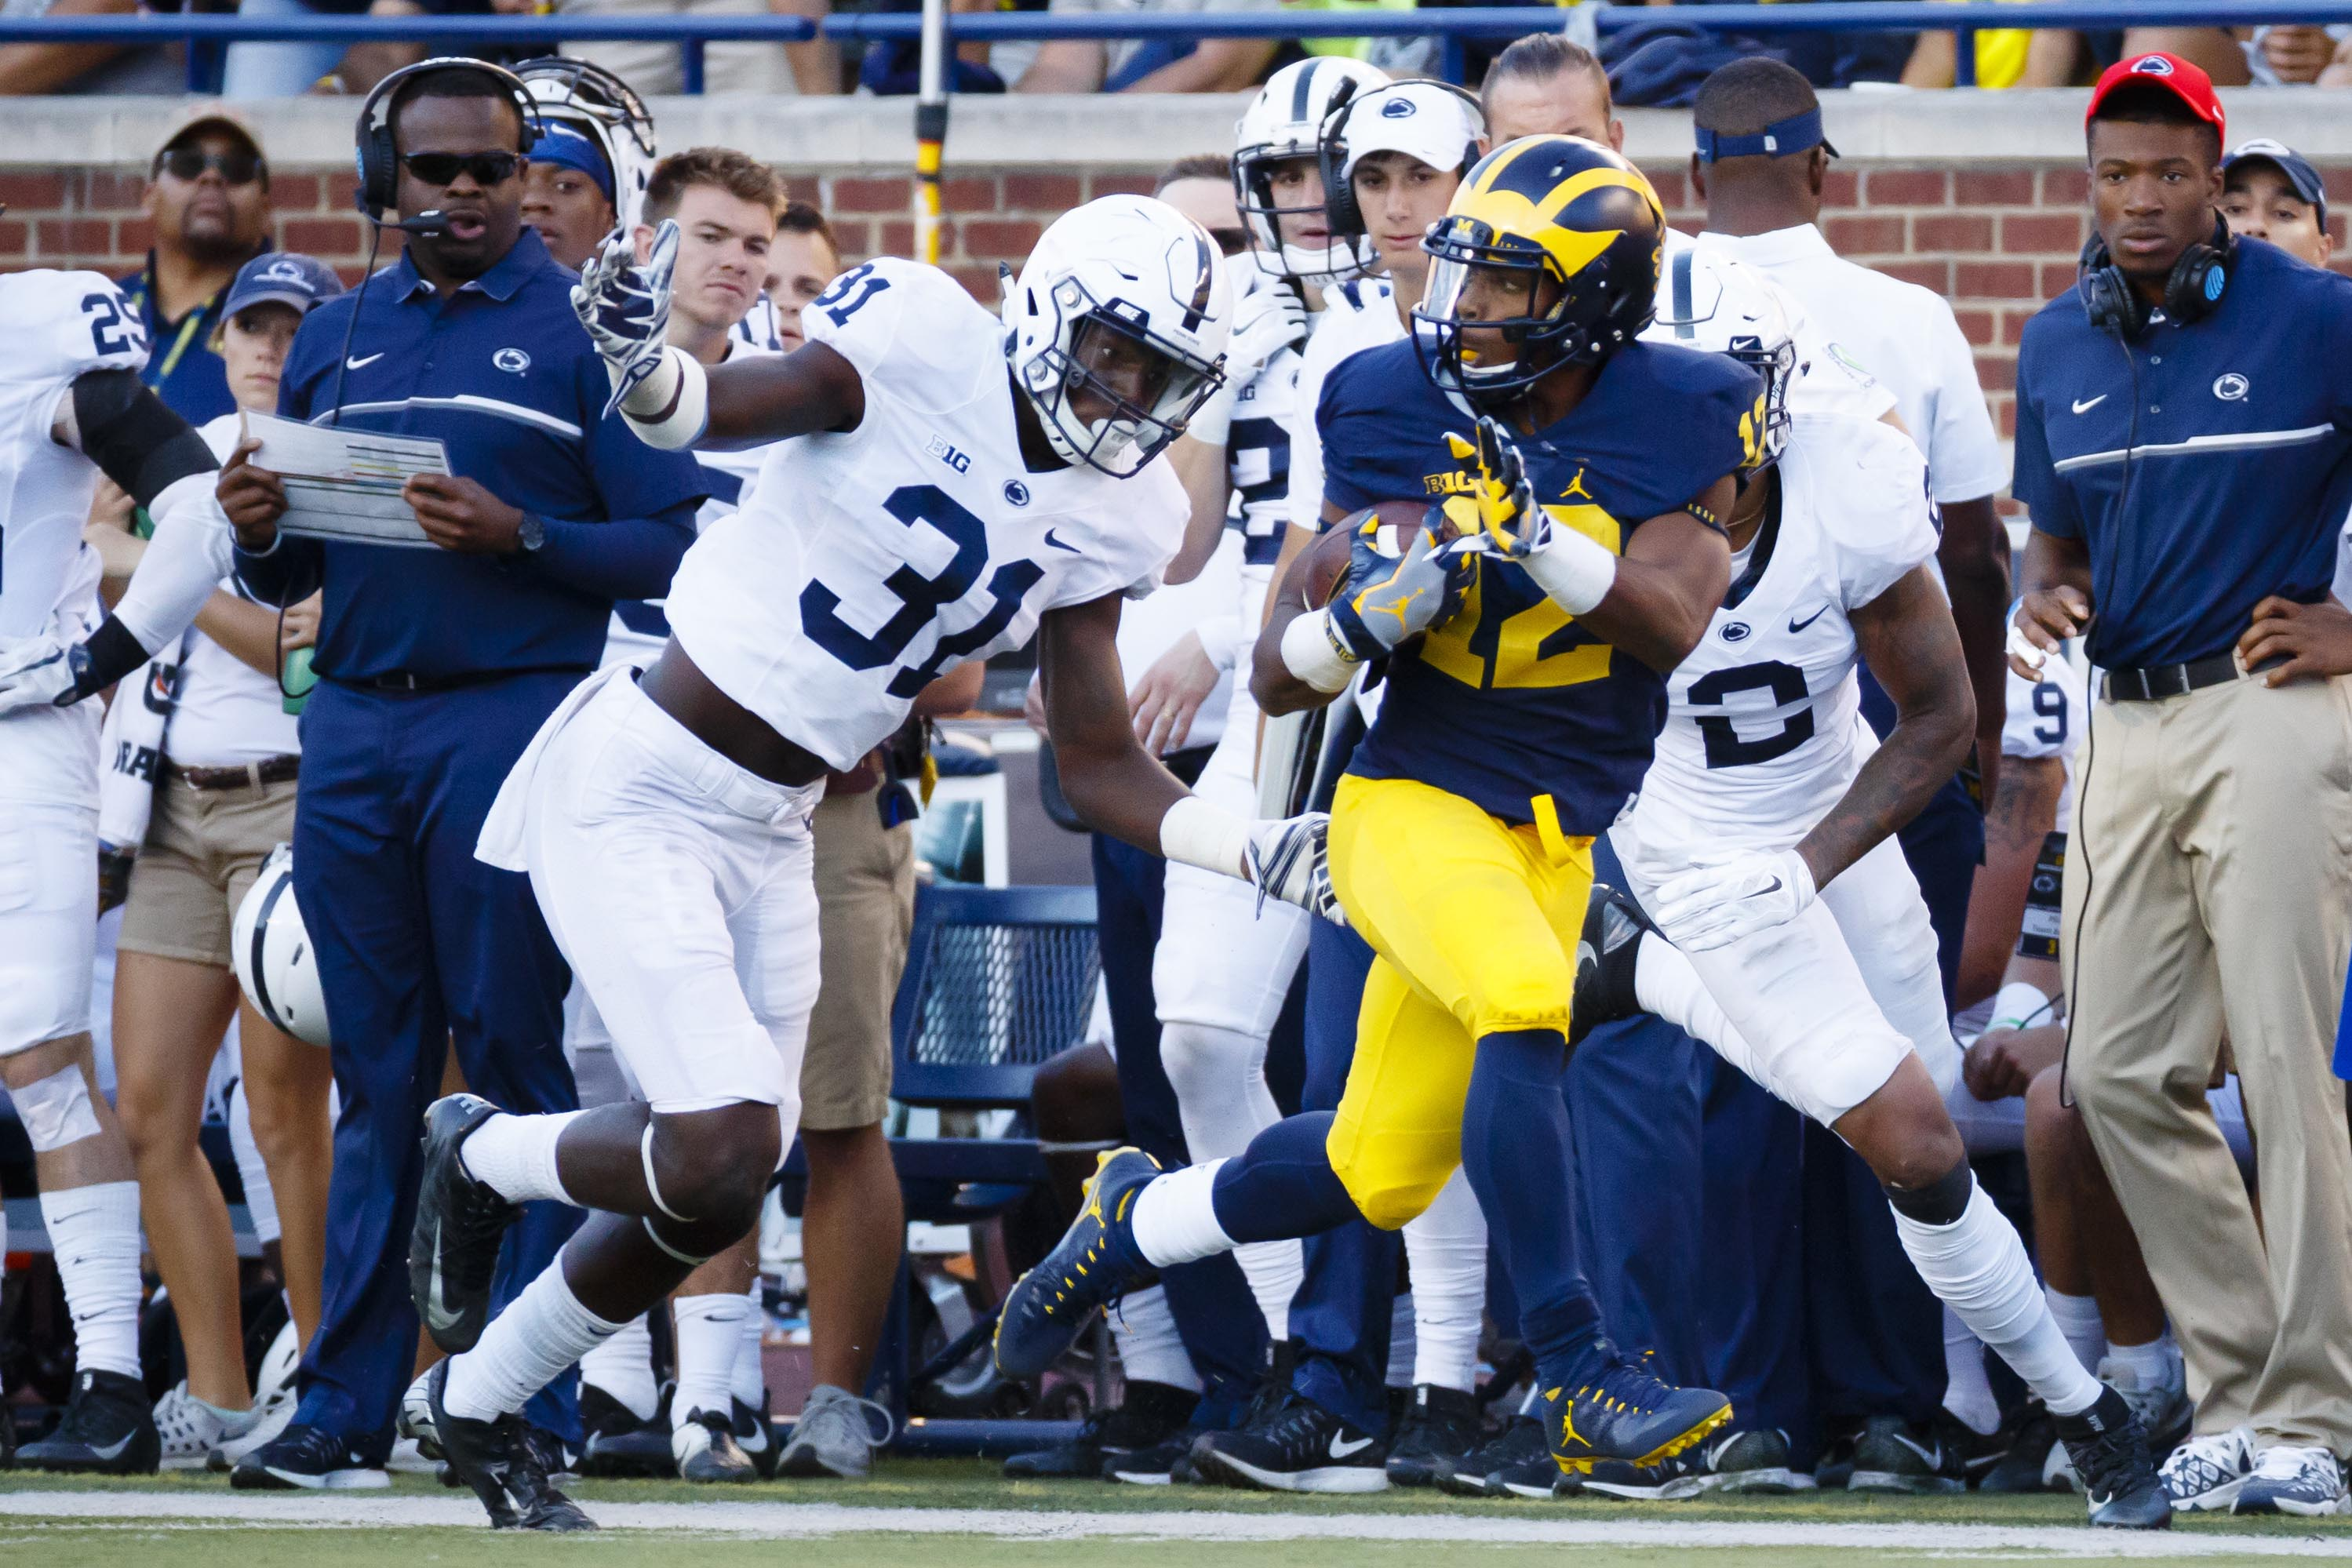 9561857-ncaa-football-penn-state-at-michigan